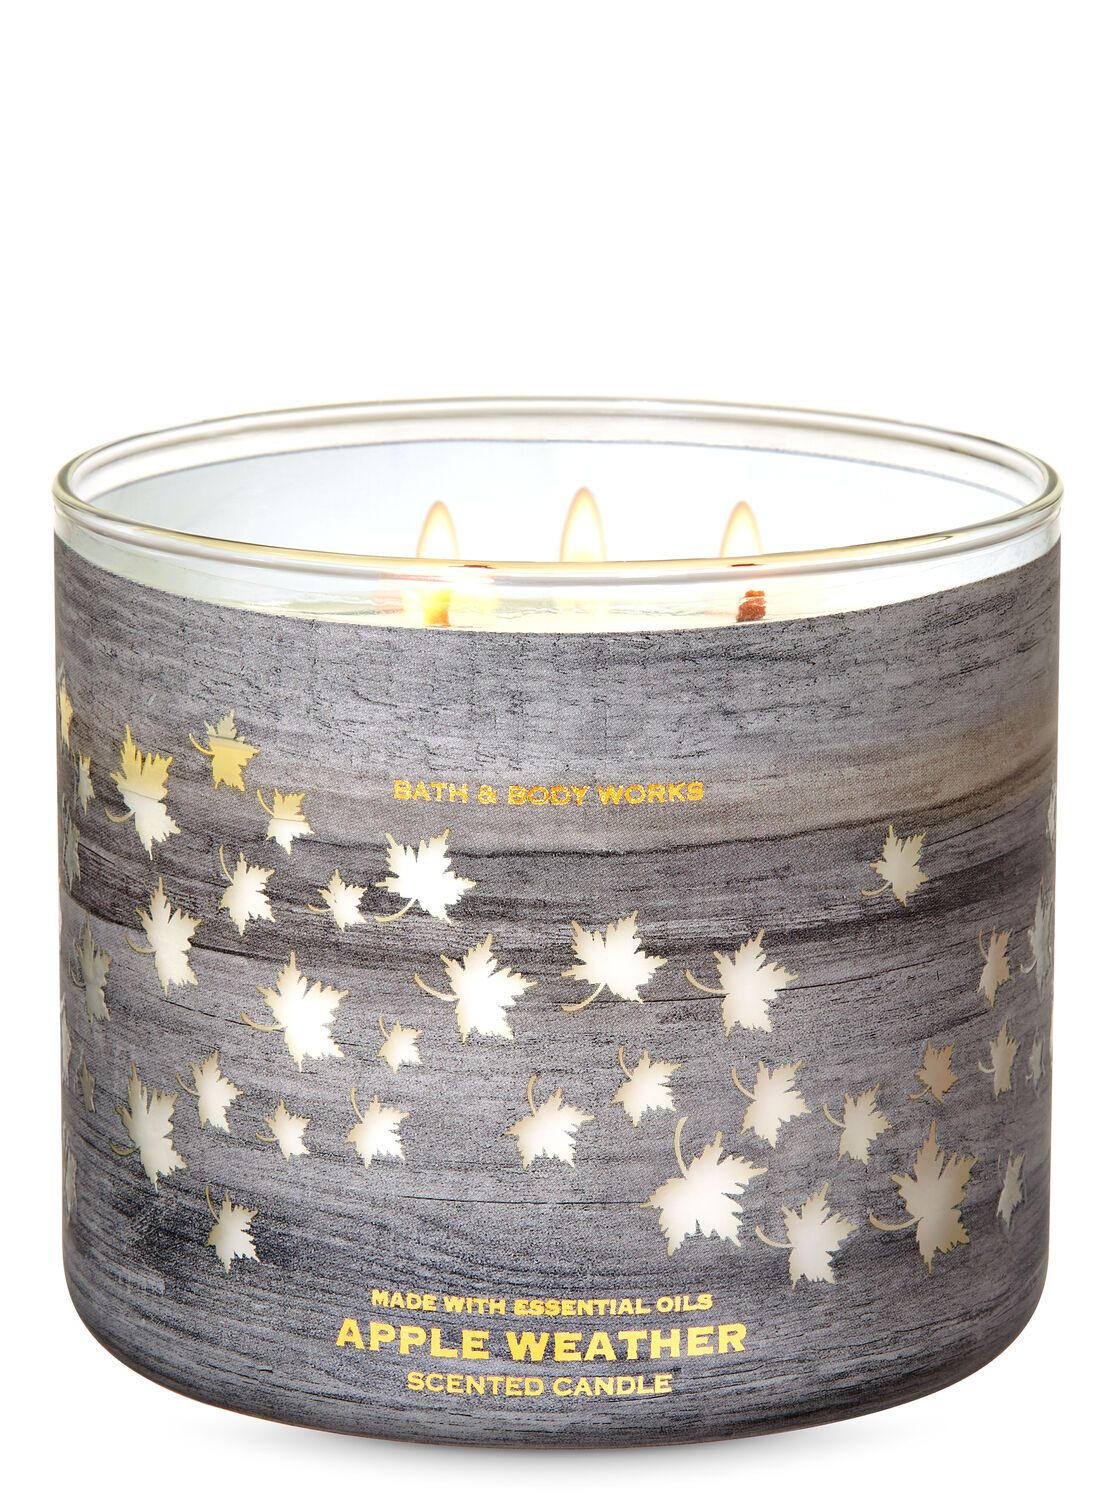 Apple Weather 3 Wick Candle By Bath Body Works 3 Wick Candles